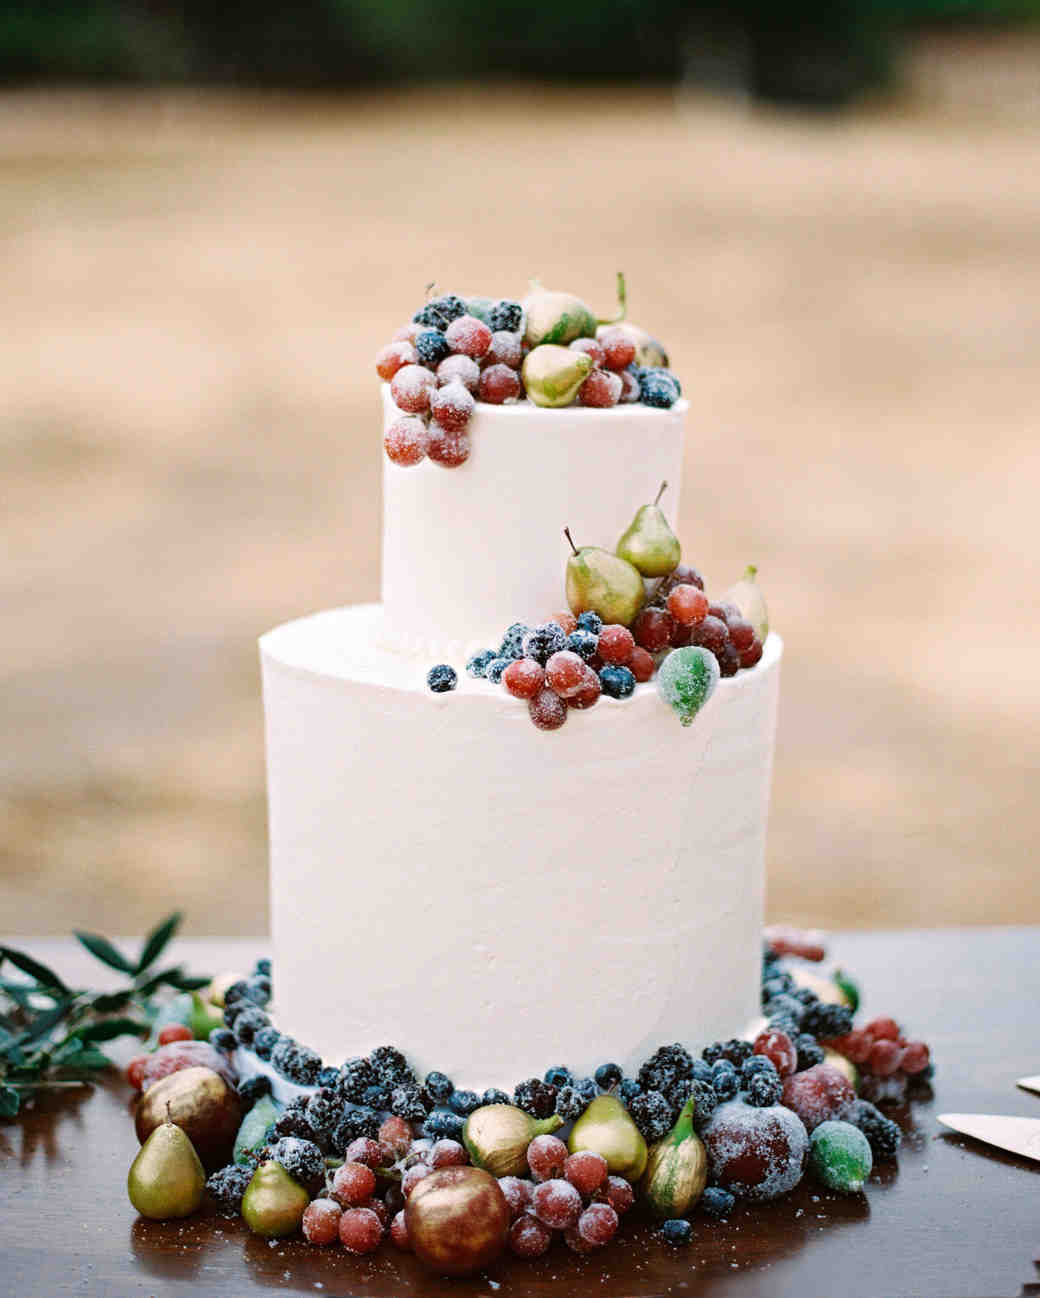 42 Fruit Wedding Cakes That Are Full of Color  and Flavor     Martha     Wedding Cake with Berries  Grapes  Figs  and Pears